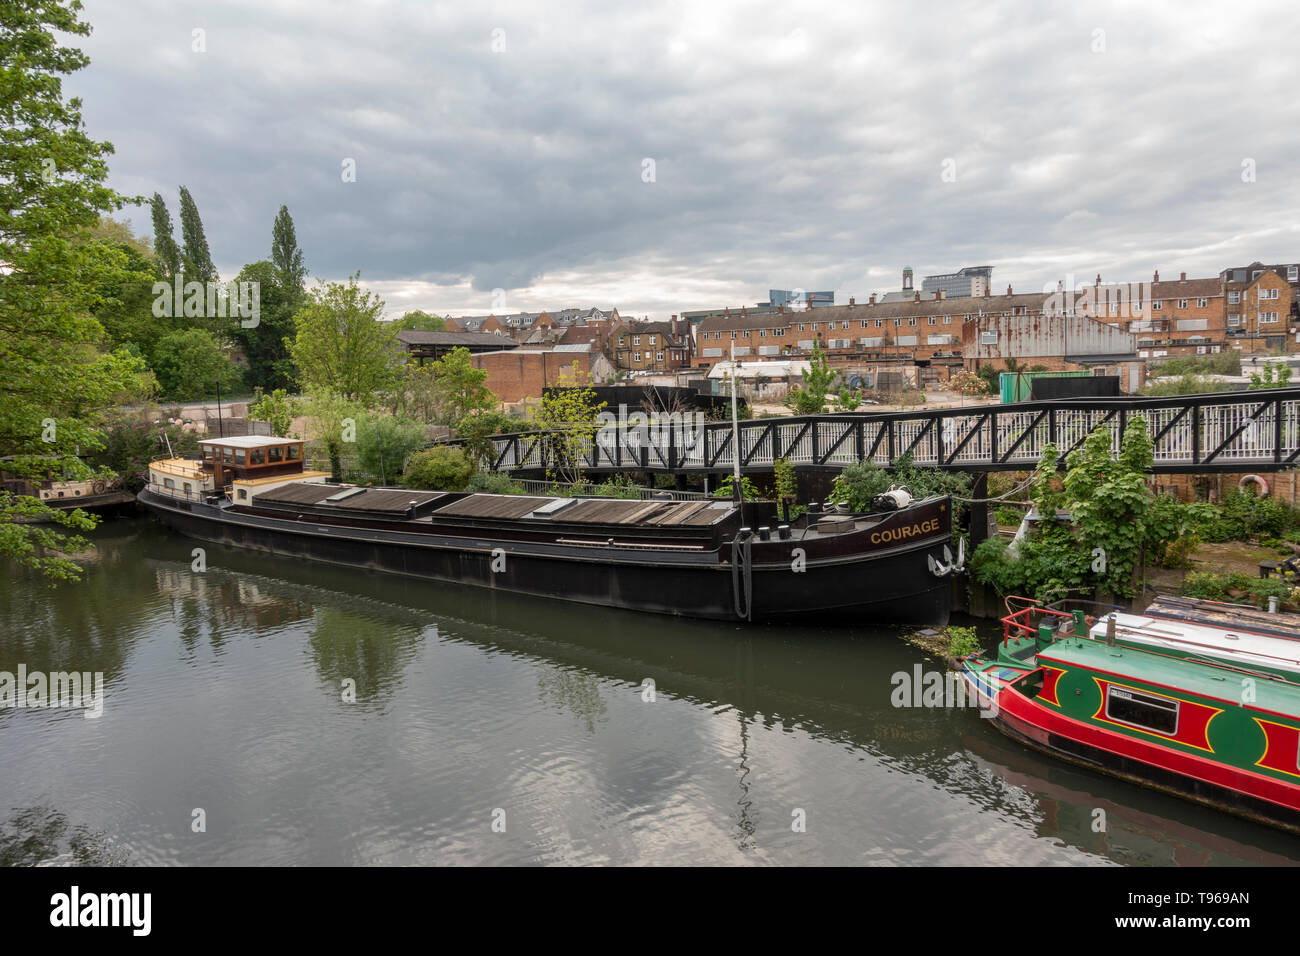 River Brent view of River Brent Brentford High Street area prior to major redevelopment beginning in 2019. - Stock Image